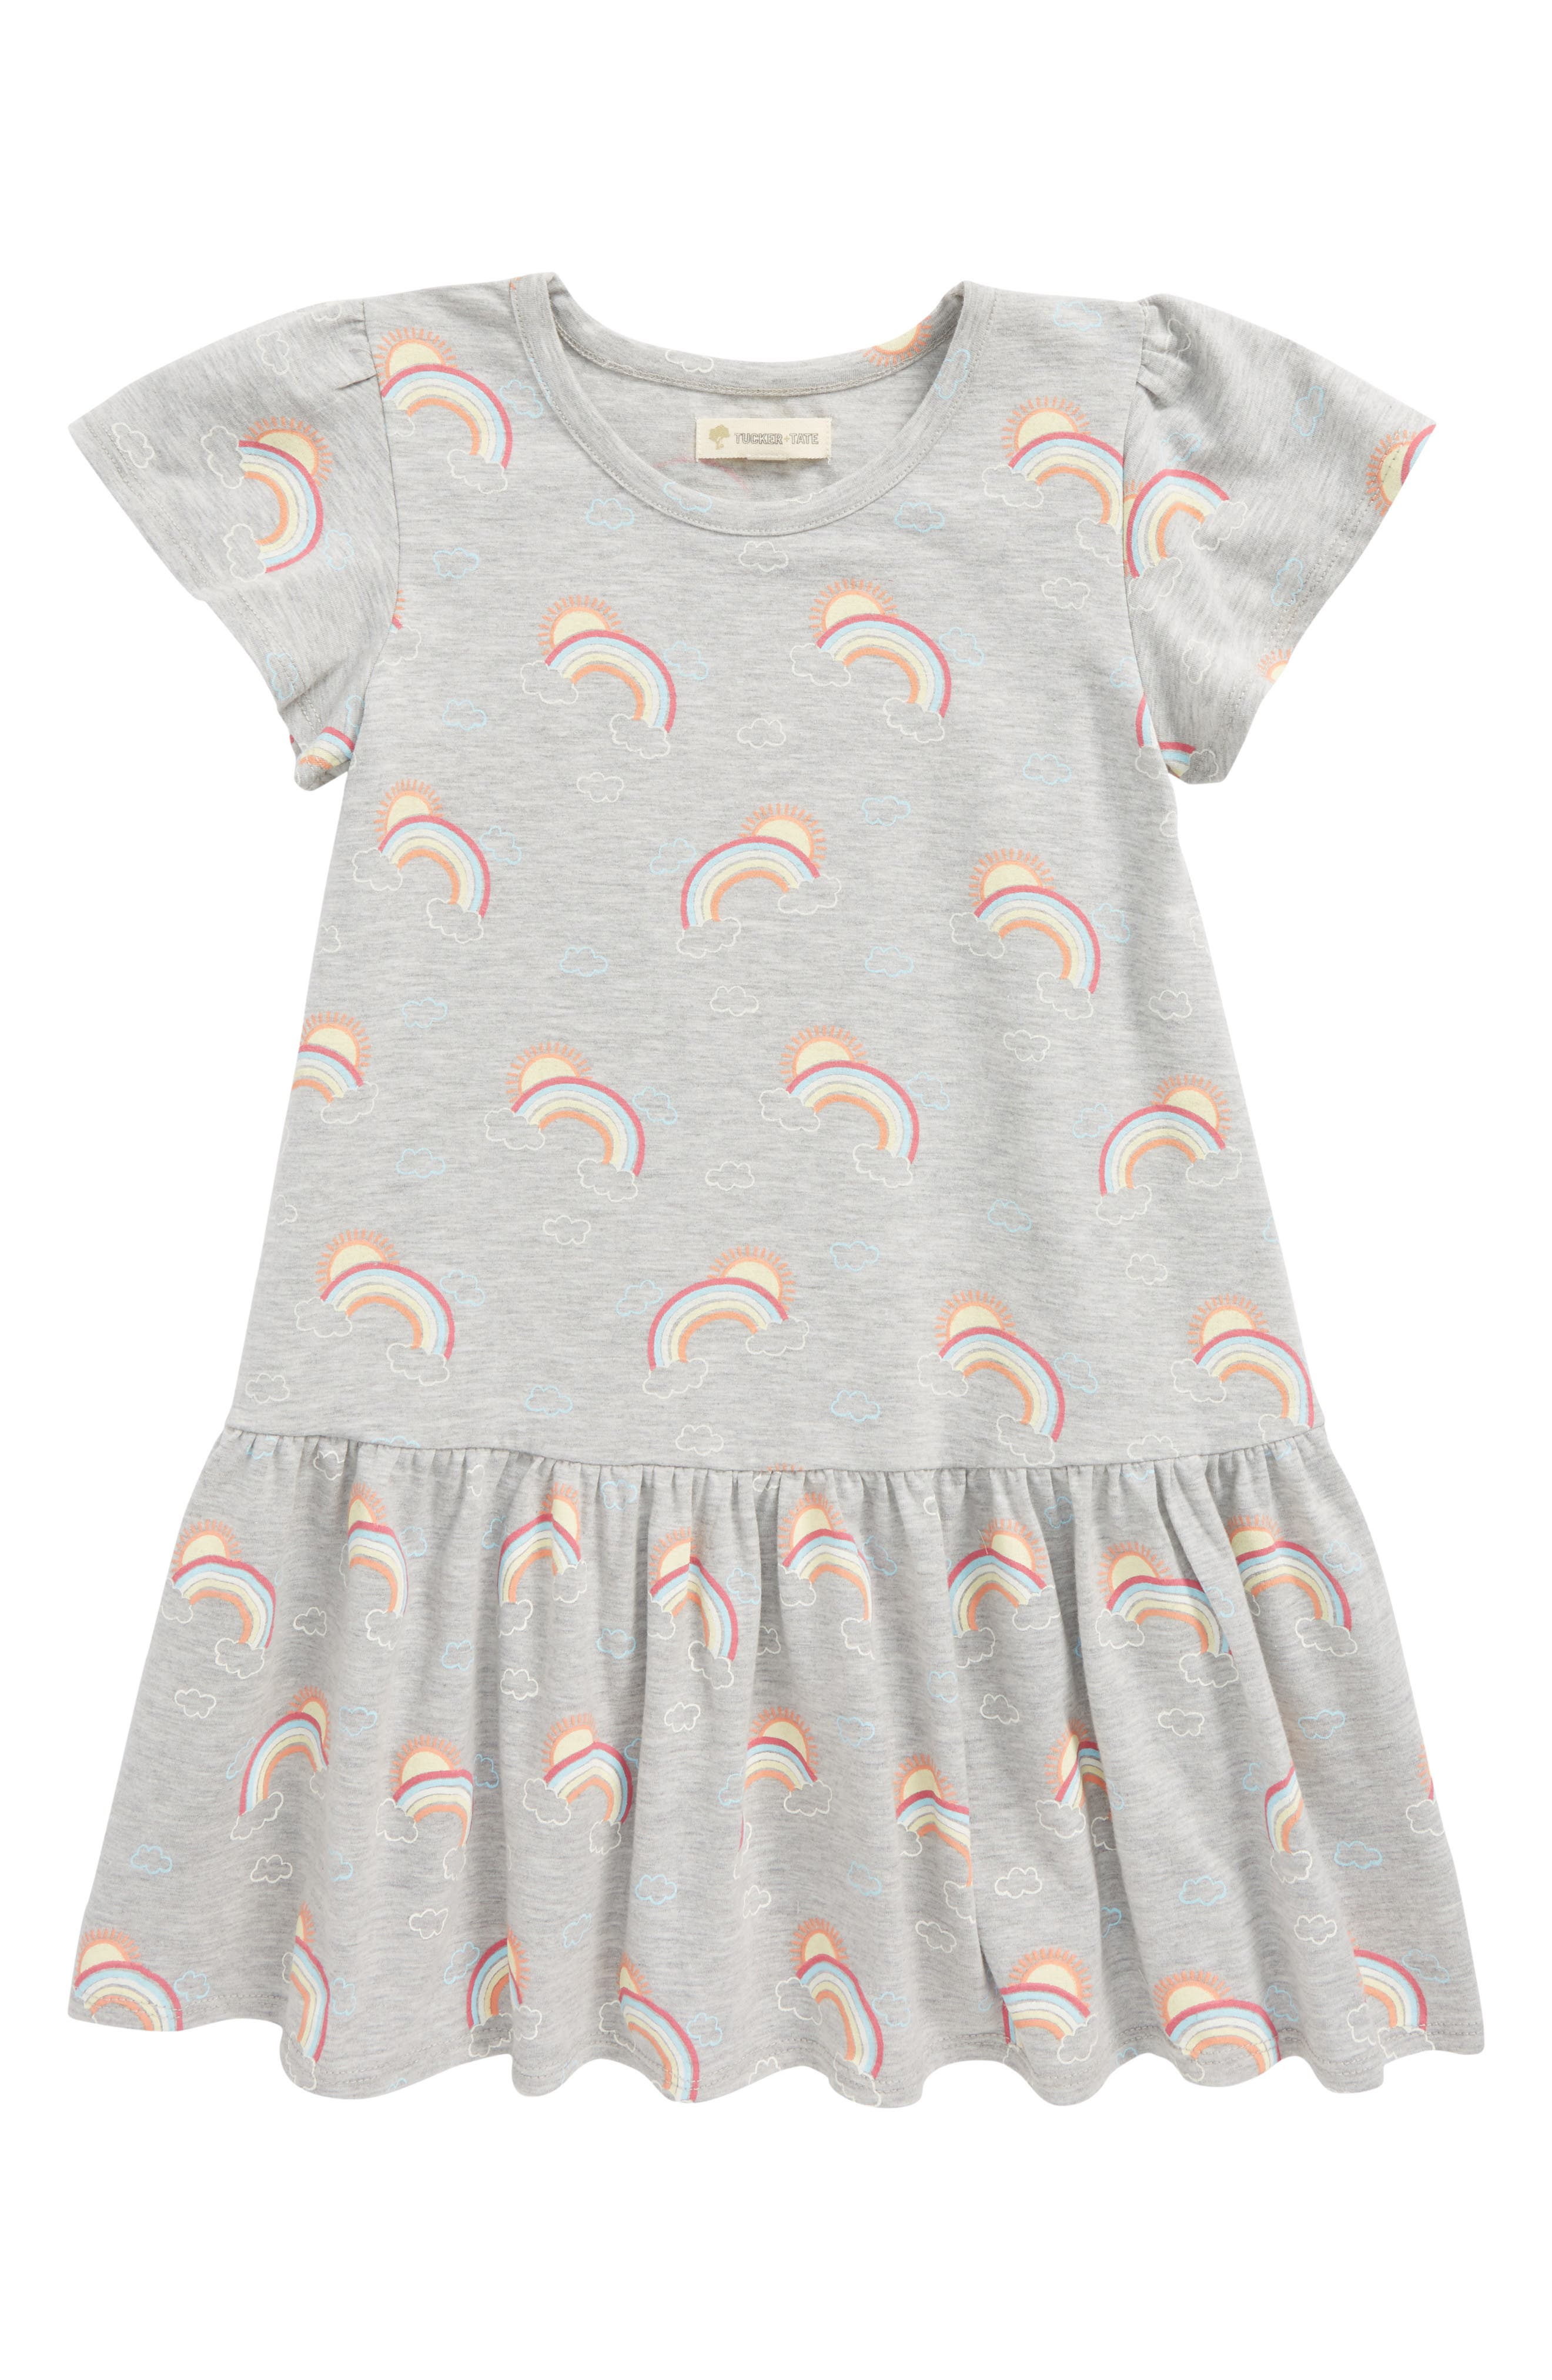 Tucker & Tate Print Jersey Dress,                         Main,                         color, Grey Ash Heather Rainbows